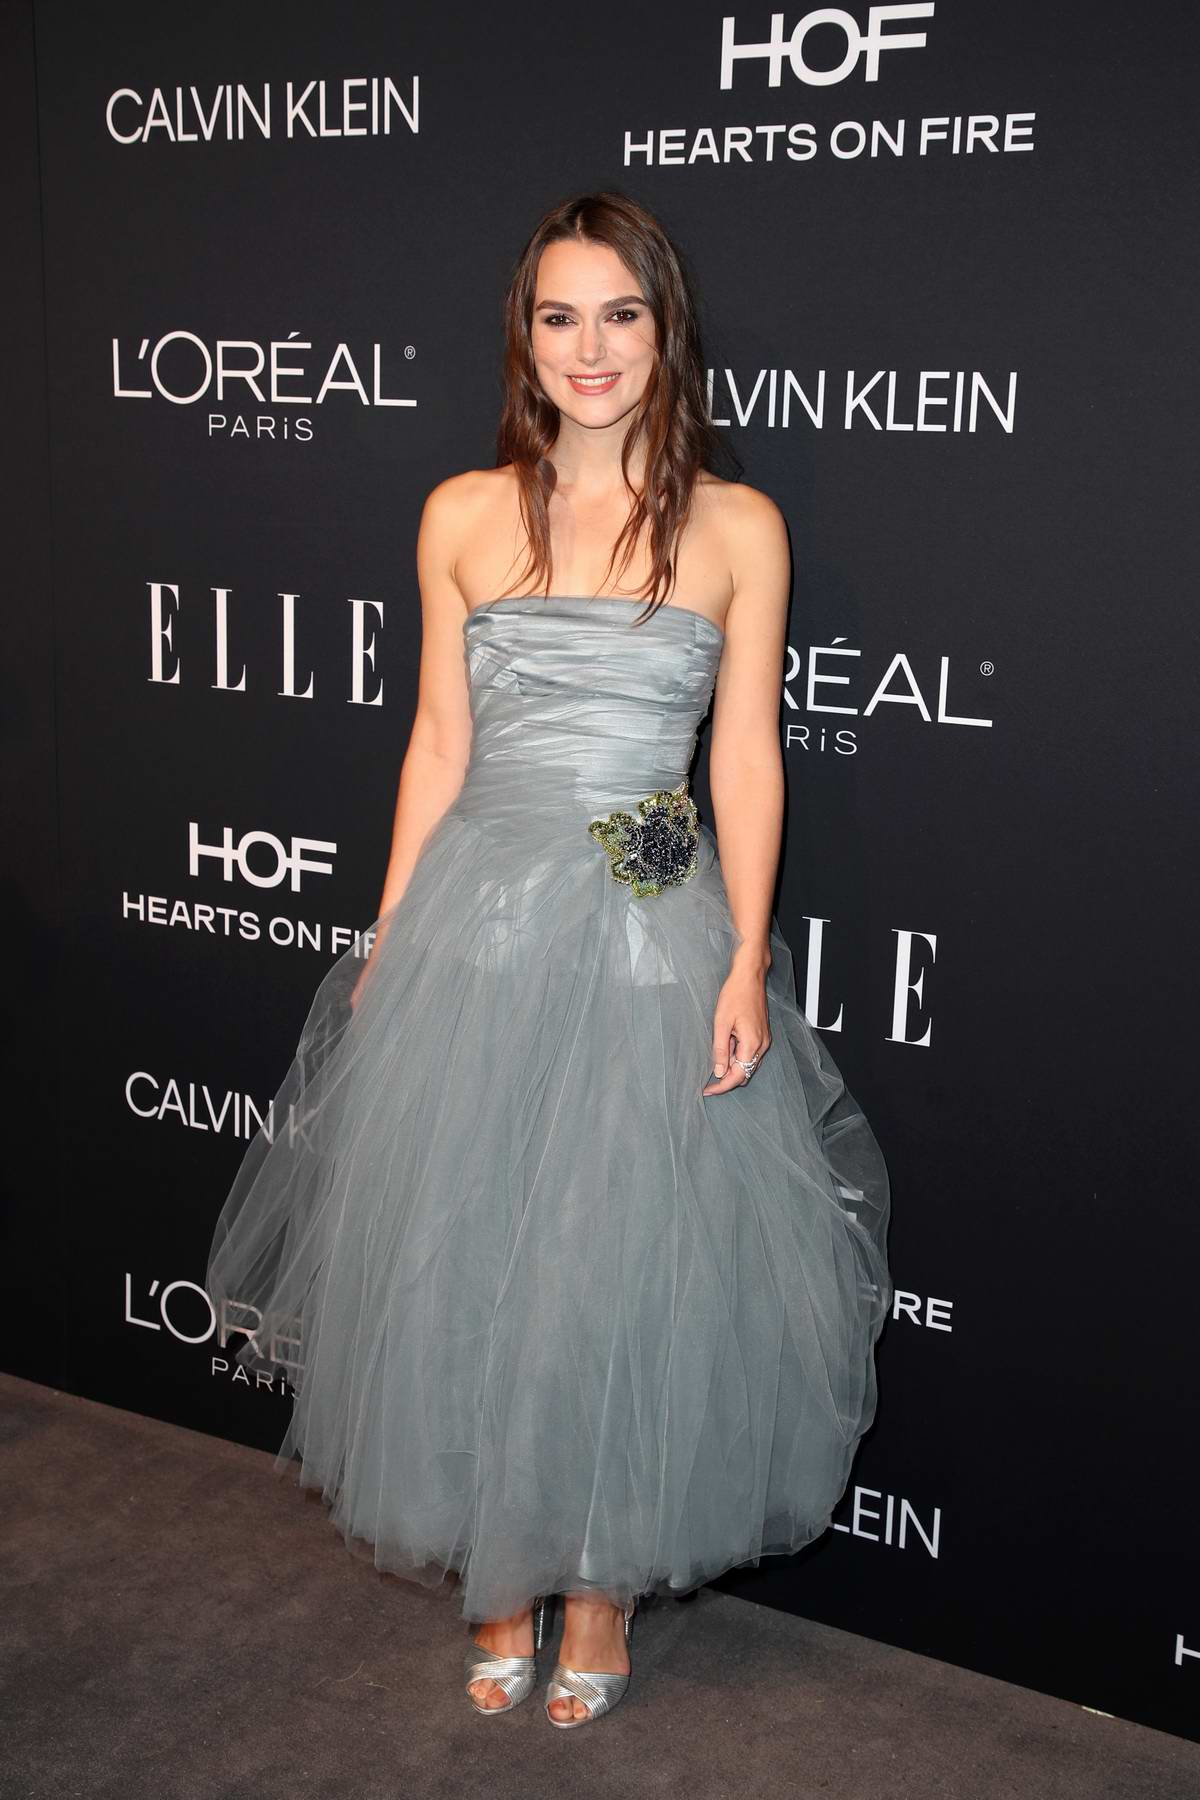 Keira Knightley attends ELLE's 25th Annual Women In Hollywood Celebration at the Four Seasons Hotel in Beverly Hills, Los Angeles